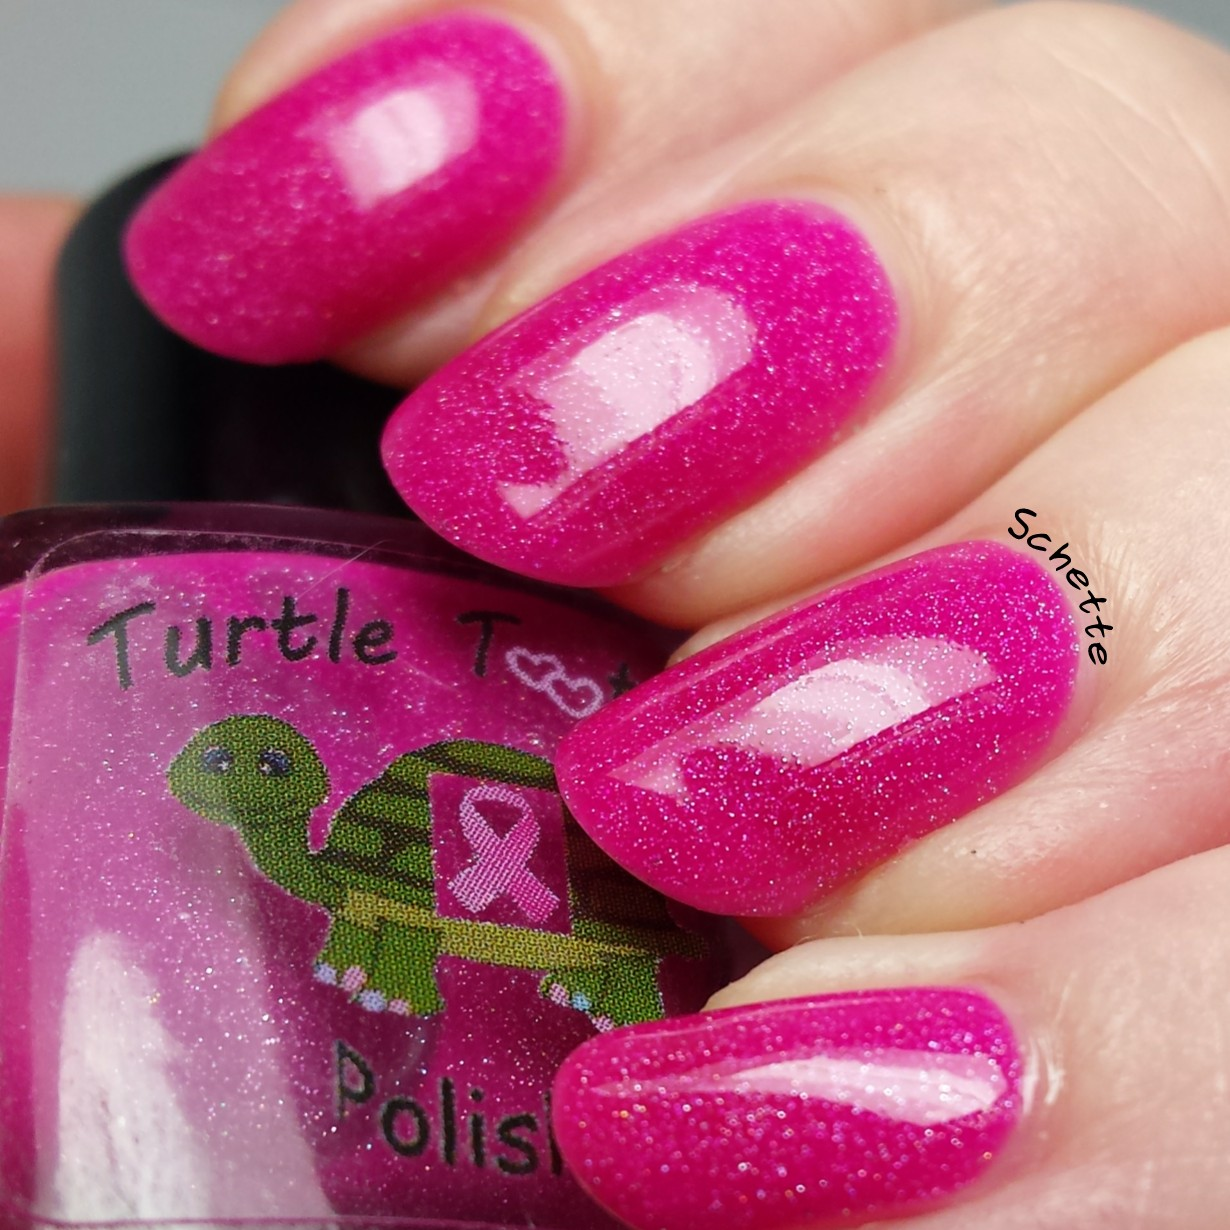 Turtle Tootsie Polish : Breast Cancer Awareness Collection